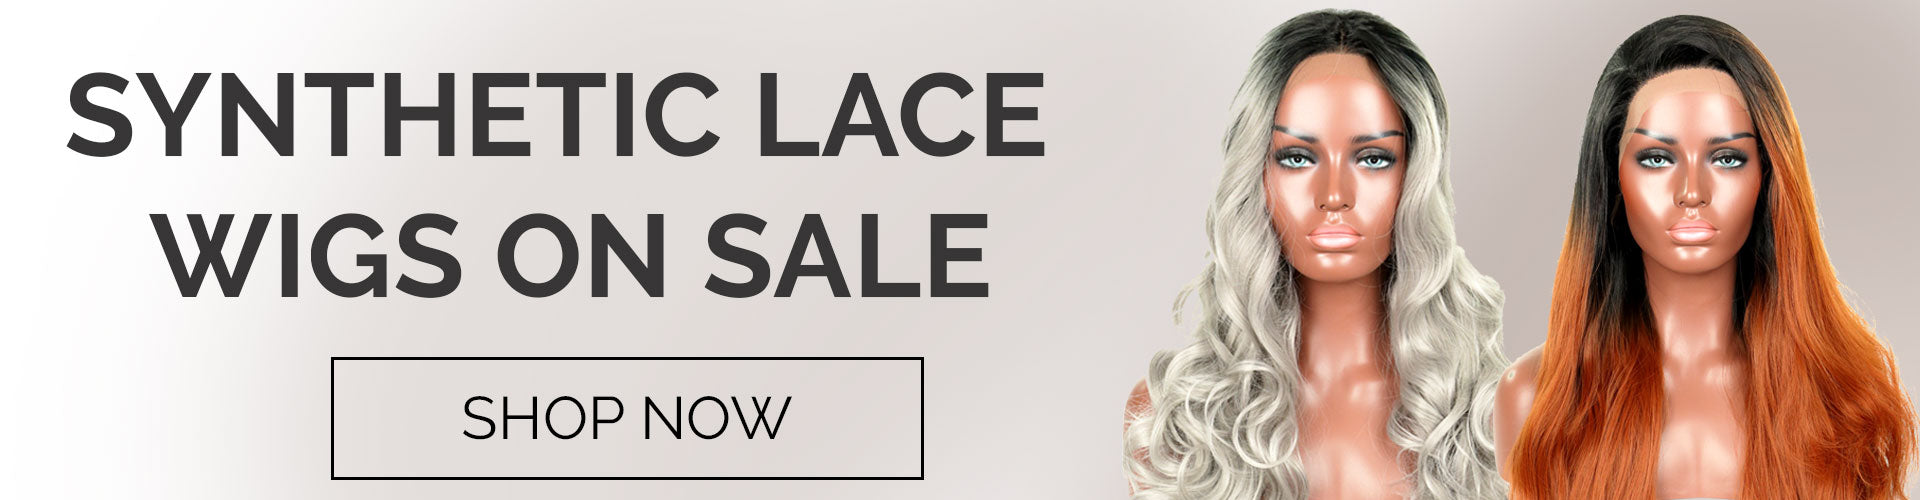 Synthetic Lace Wigs On Sale